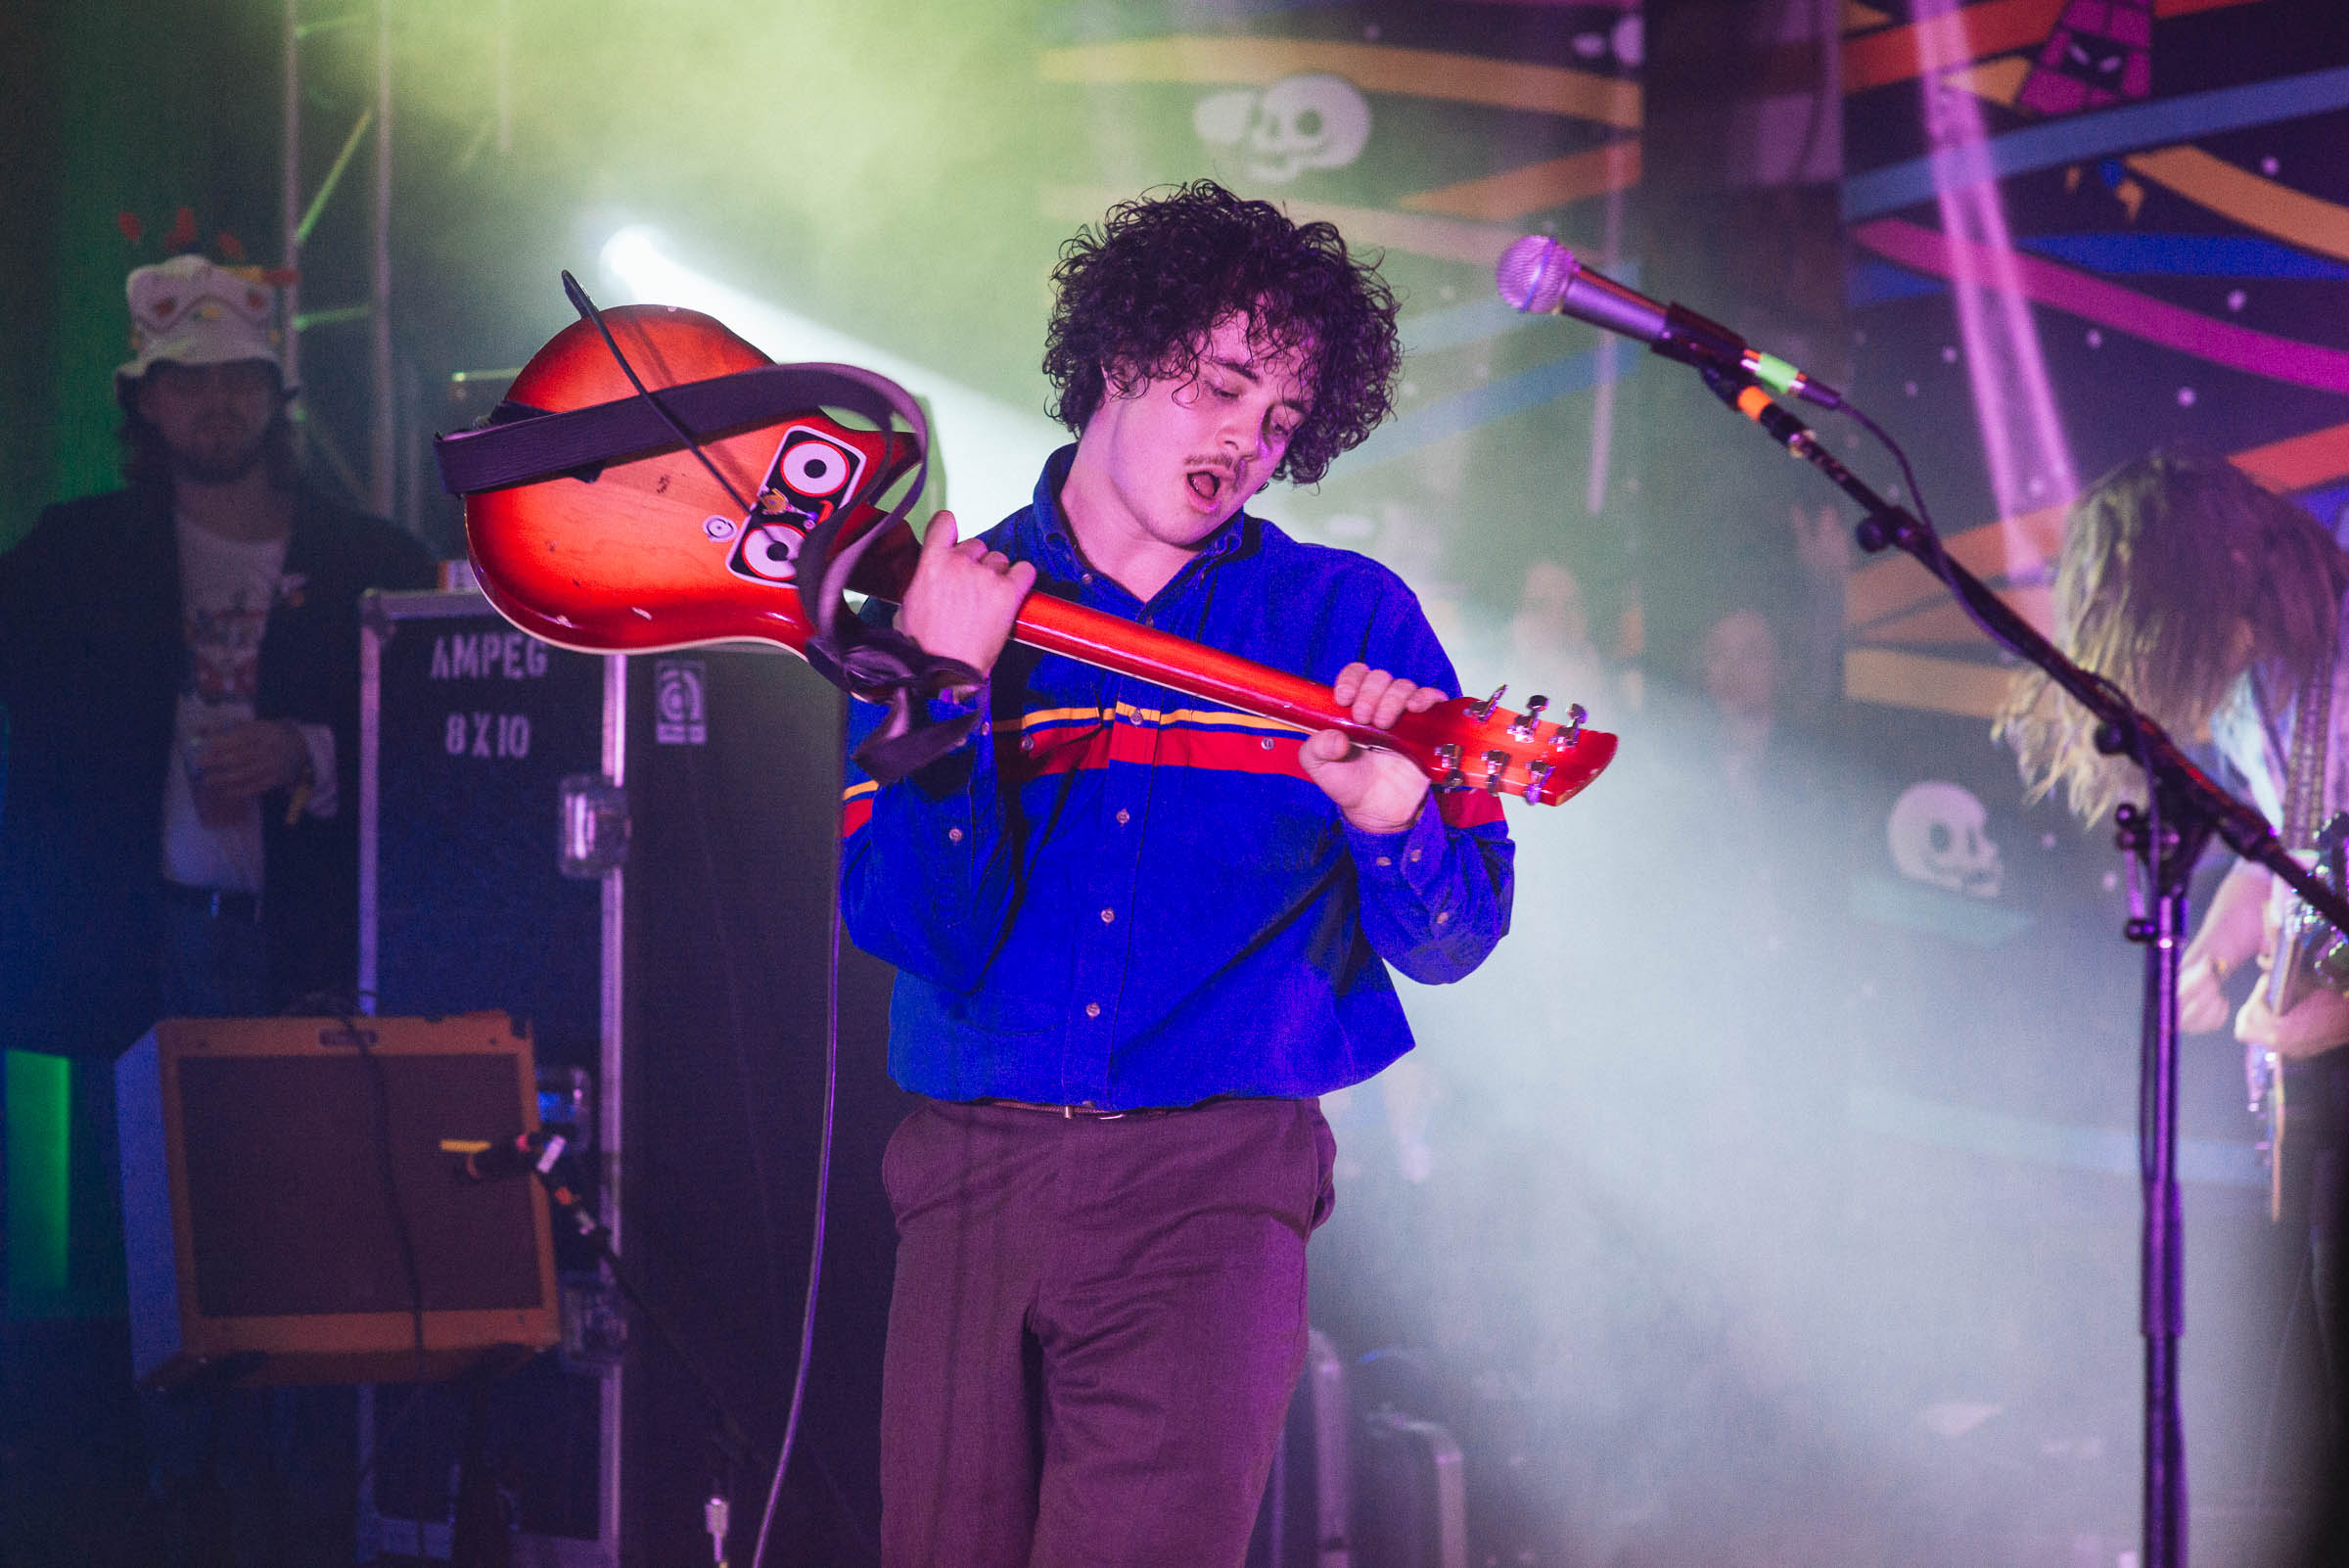 The Districts perform at El Korah Shrine during Treefort Music Fest on Thursday March 22, 2018.